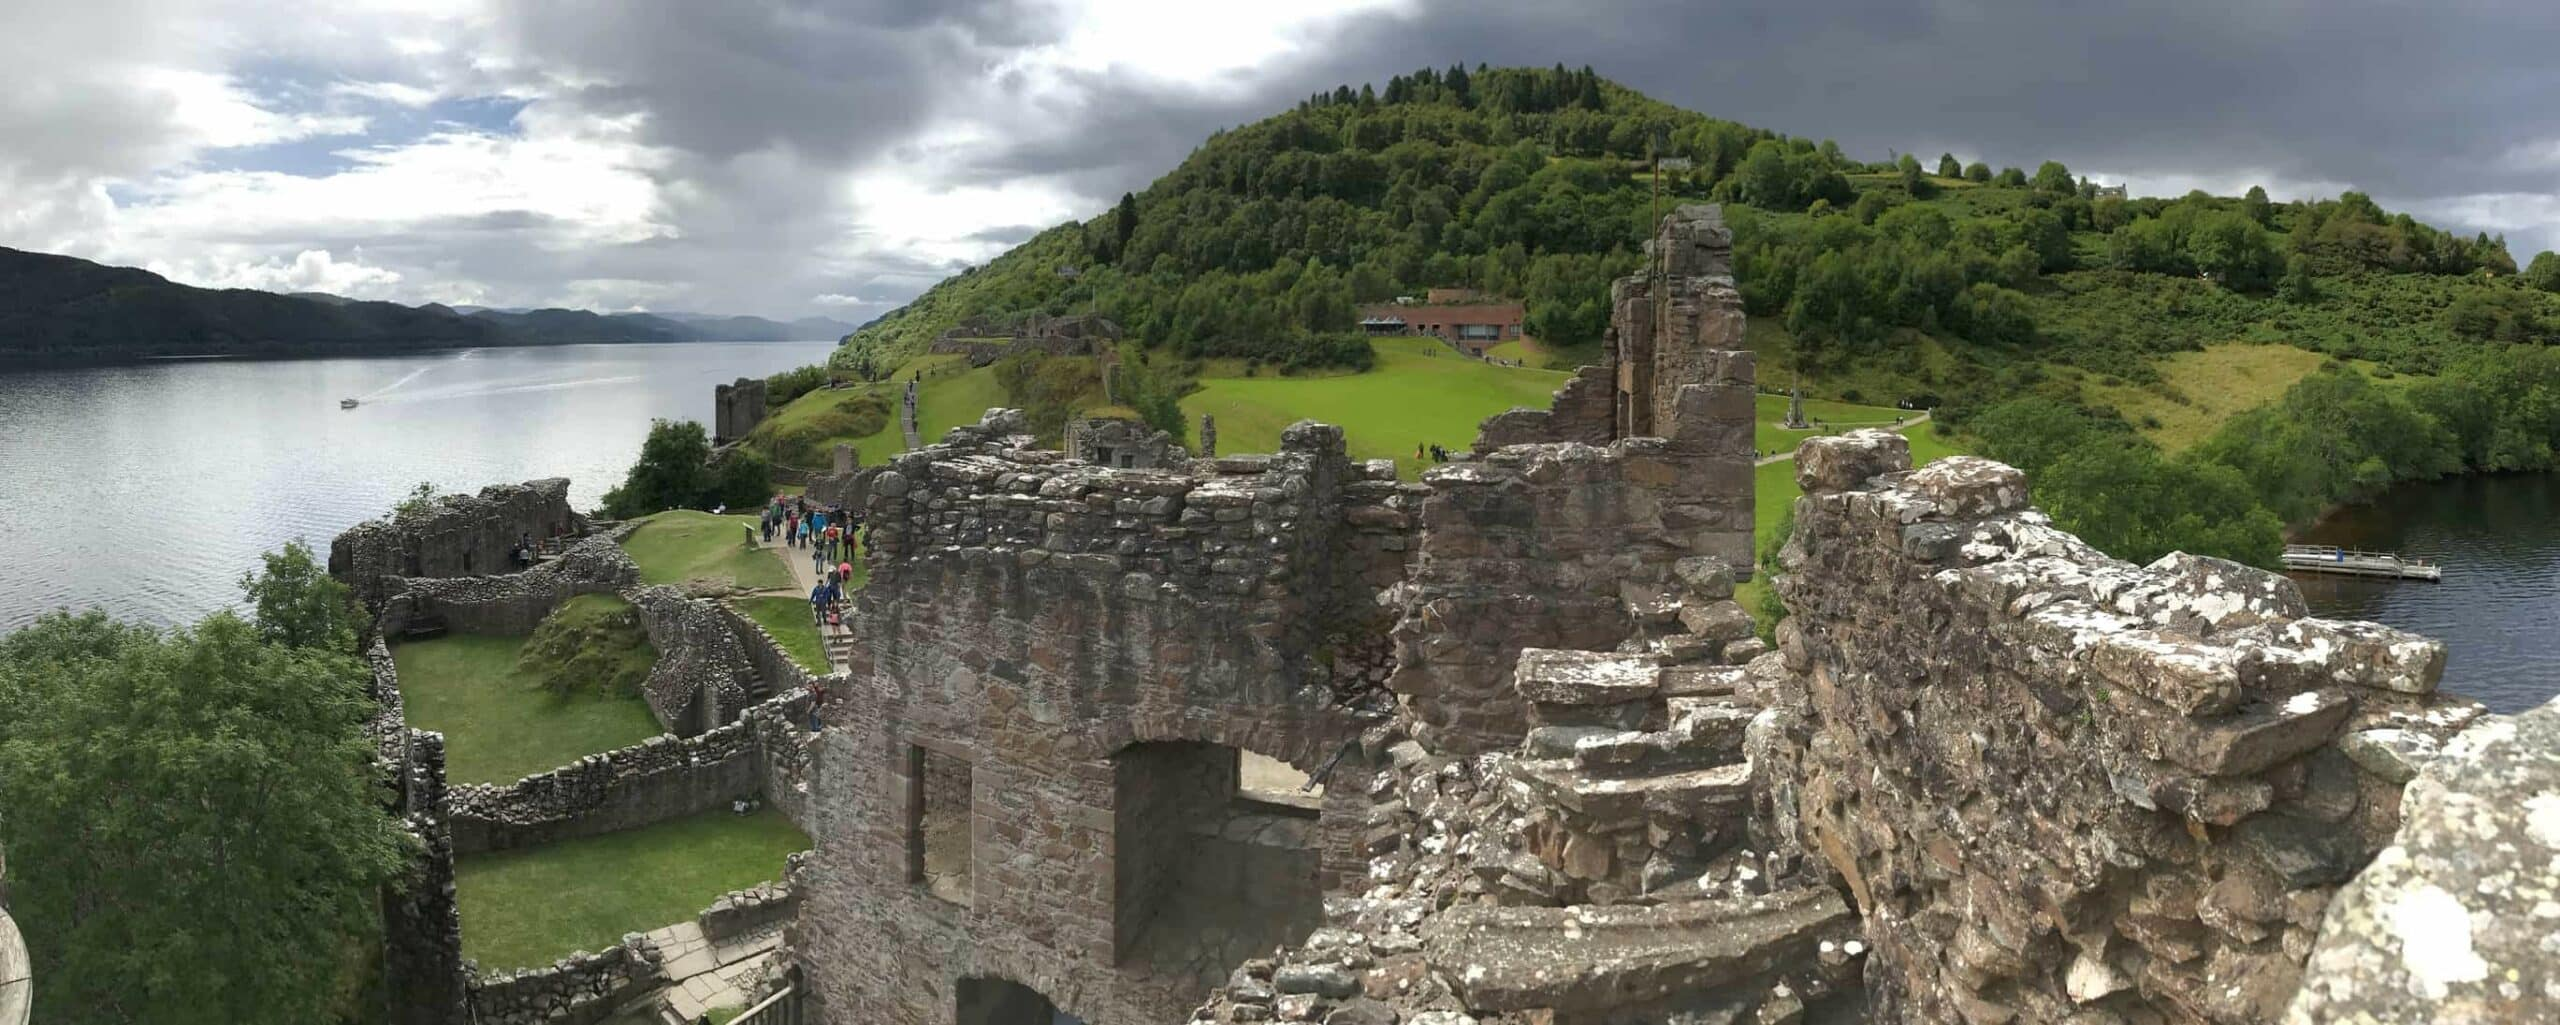 Urquhart Castle in Drumnadrochit, Inverness in the United Kingdom